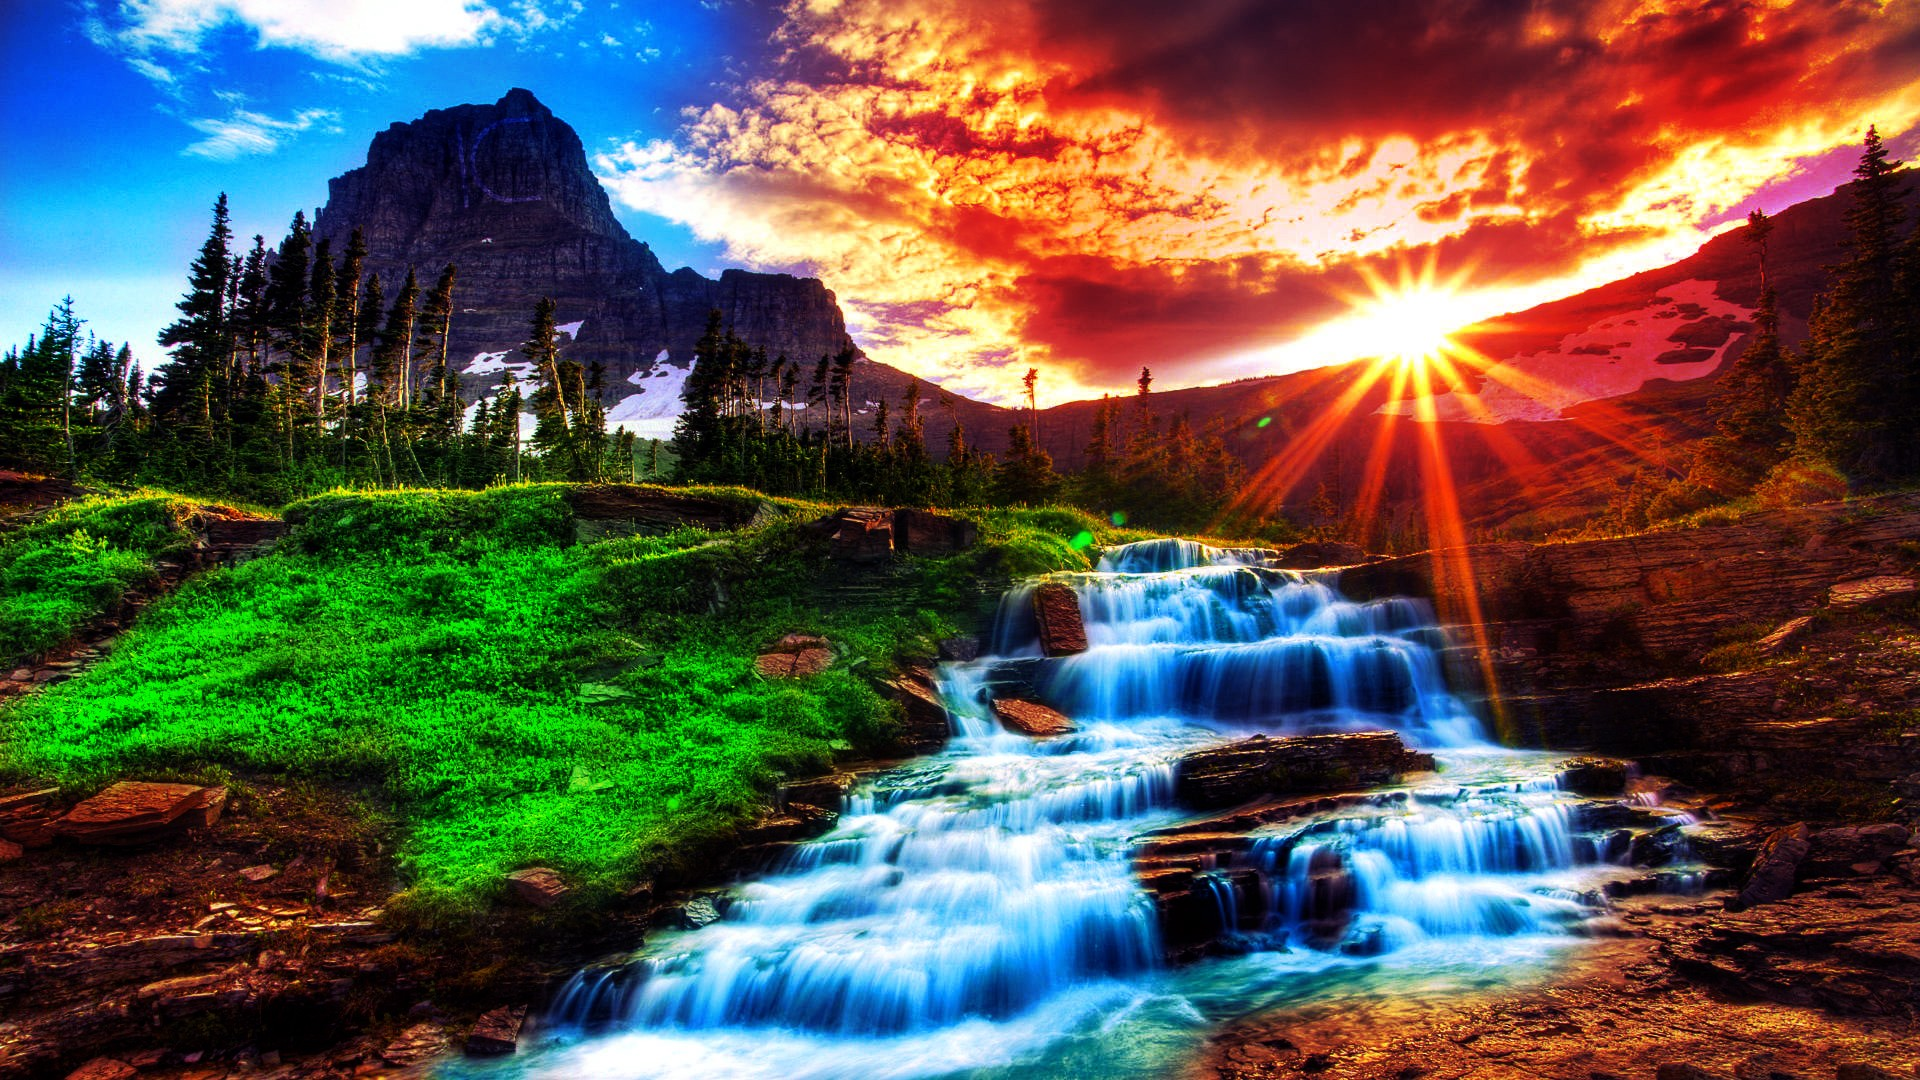 ... Waterfall Wallpaper · Waterfall Wallpaper HD